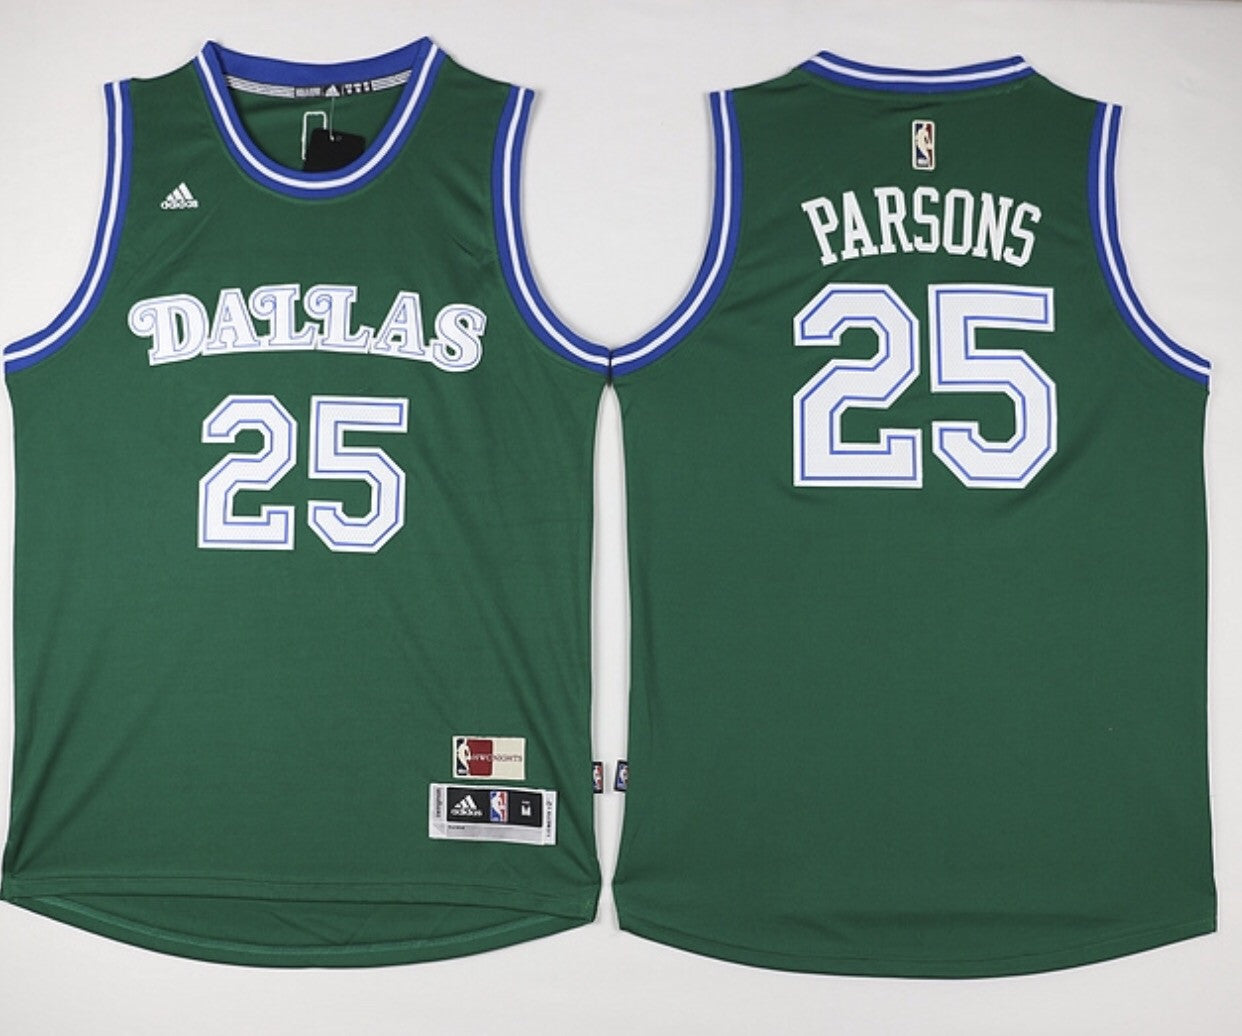 Chandler Parsons jersey